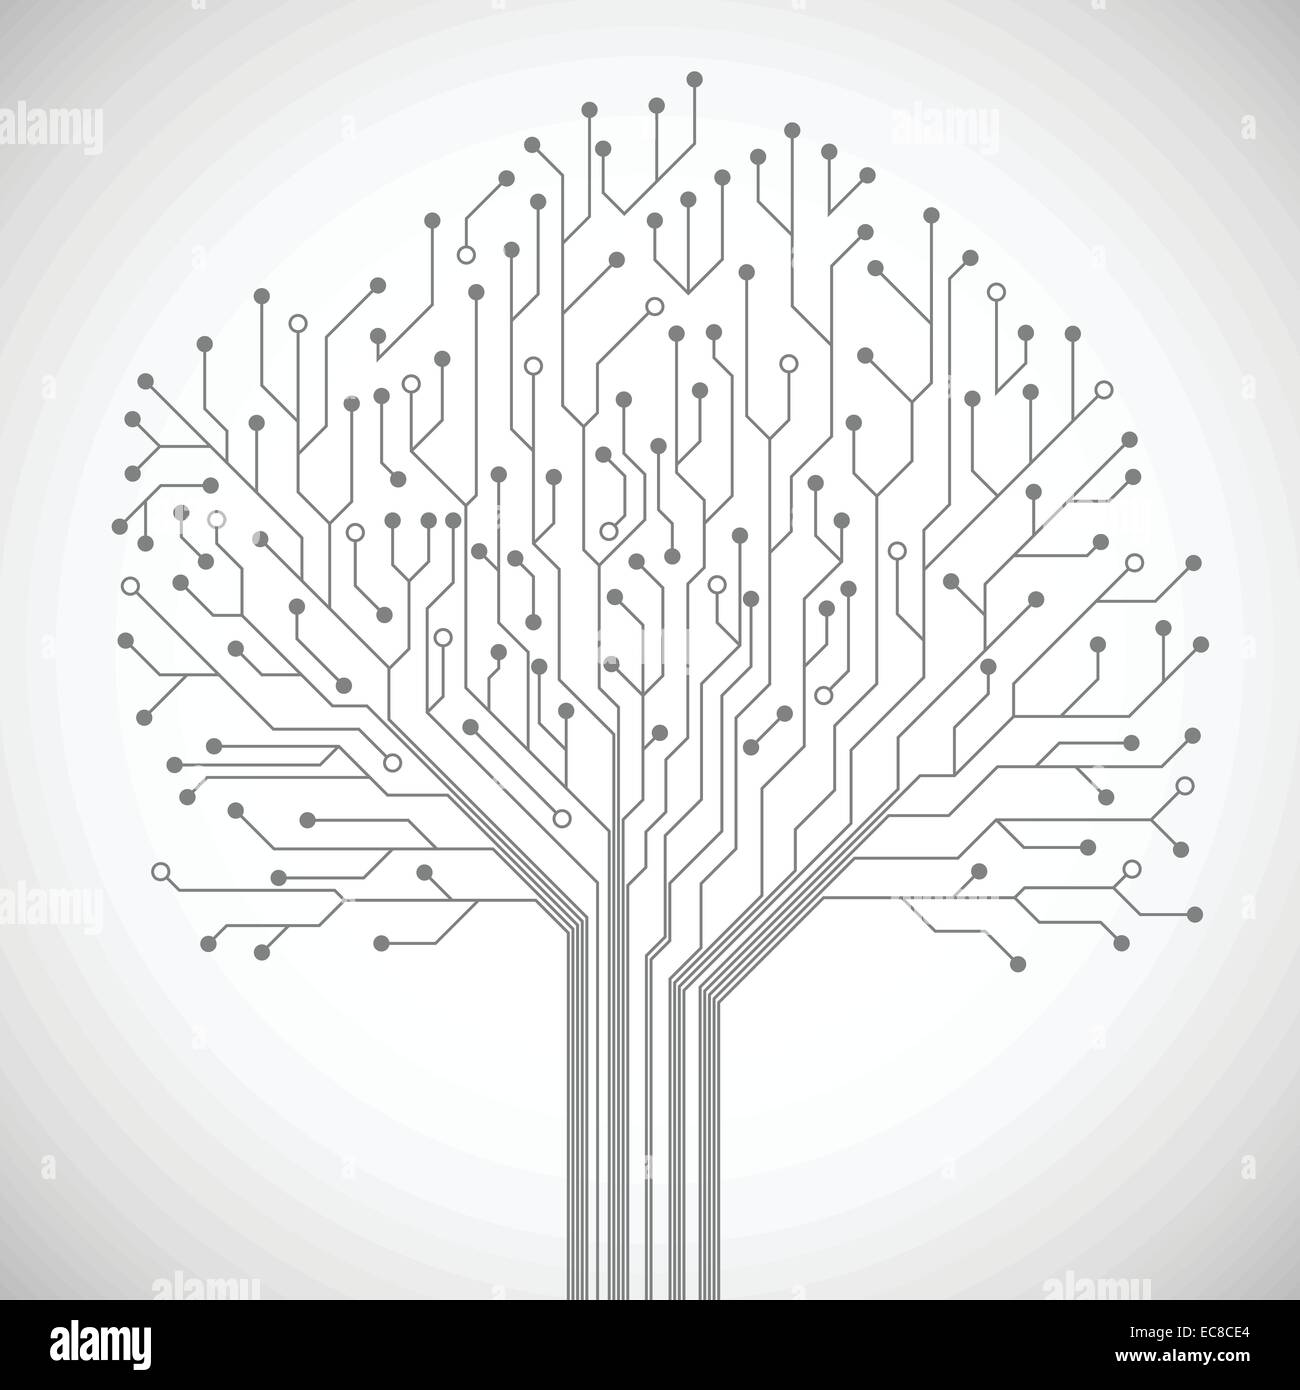 Abstract Computer Technology Integrated Circuit Board Tree Symbol Circuitelectronic Ic Buy Circuitpcb Emblem Or Poster Vector Illustration